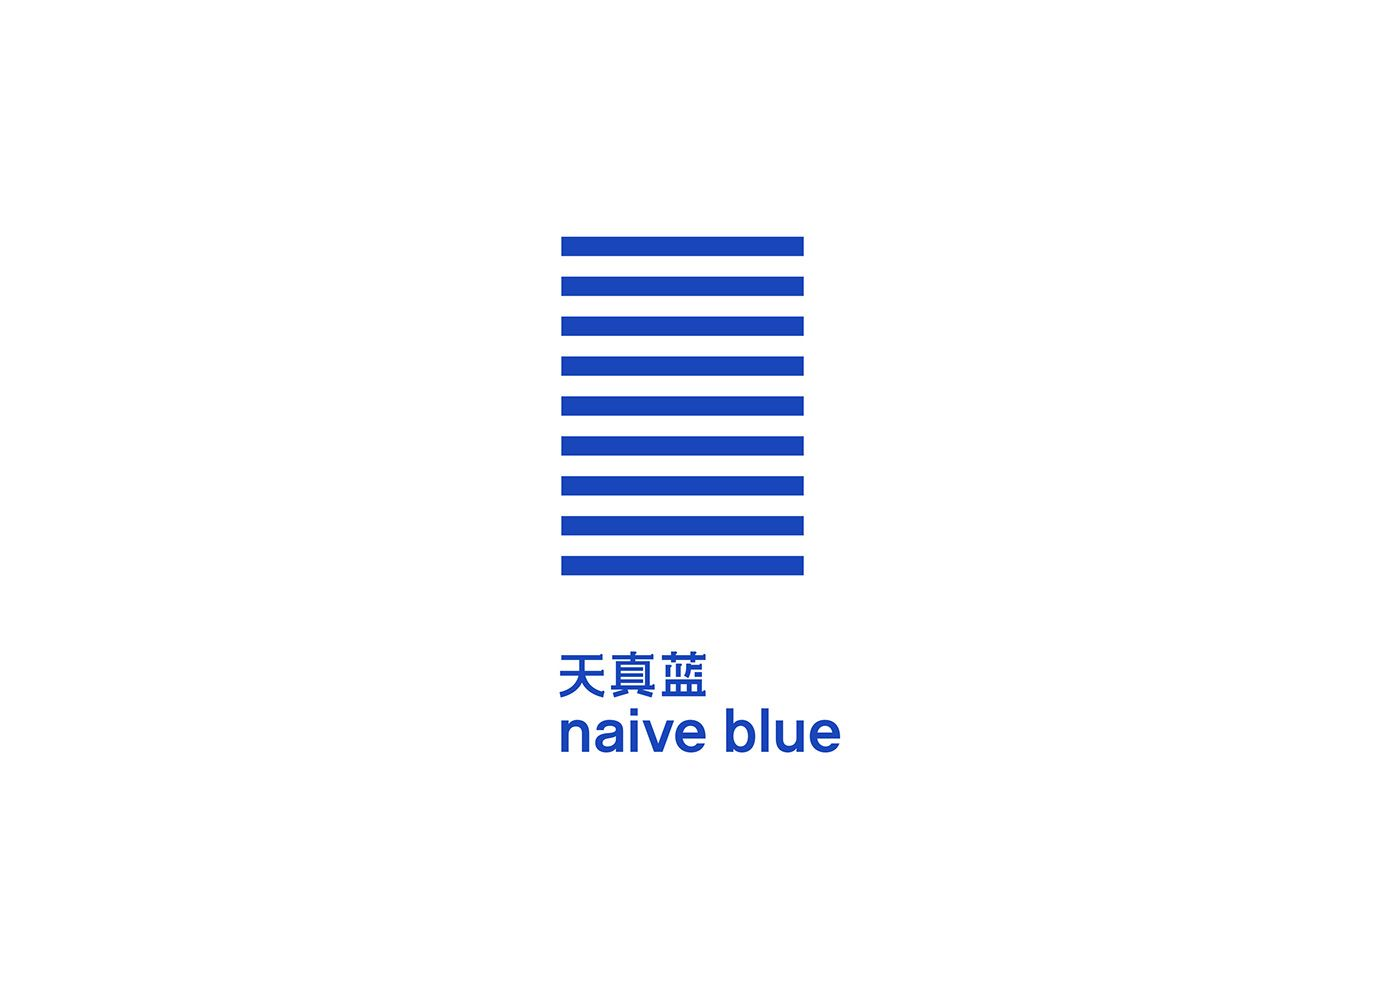 Naive Blue Visual Identity System on Behance